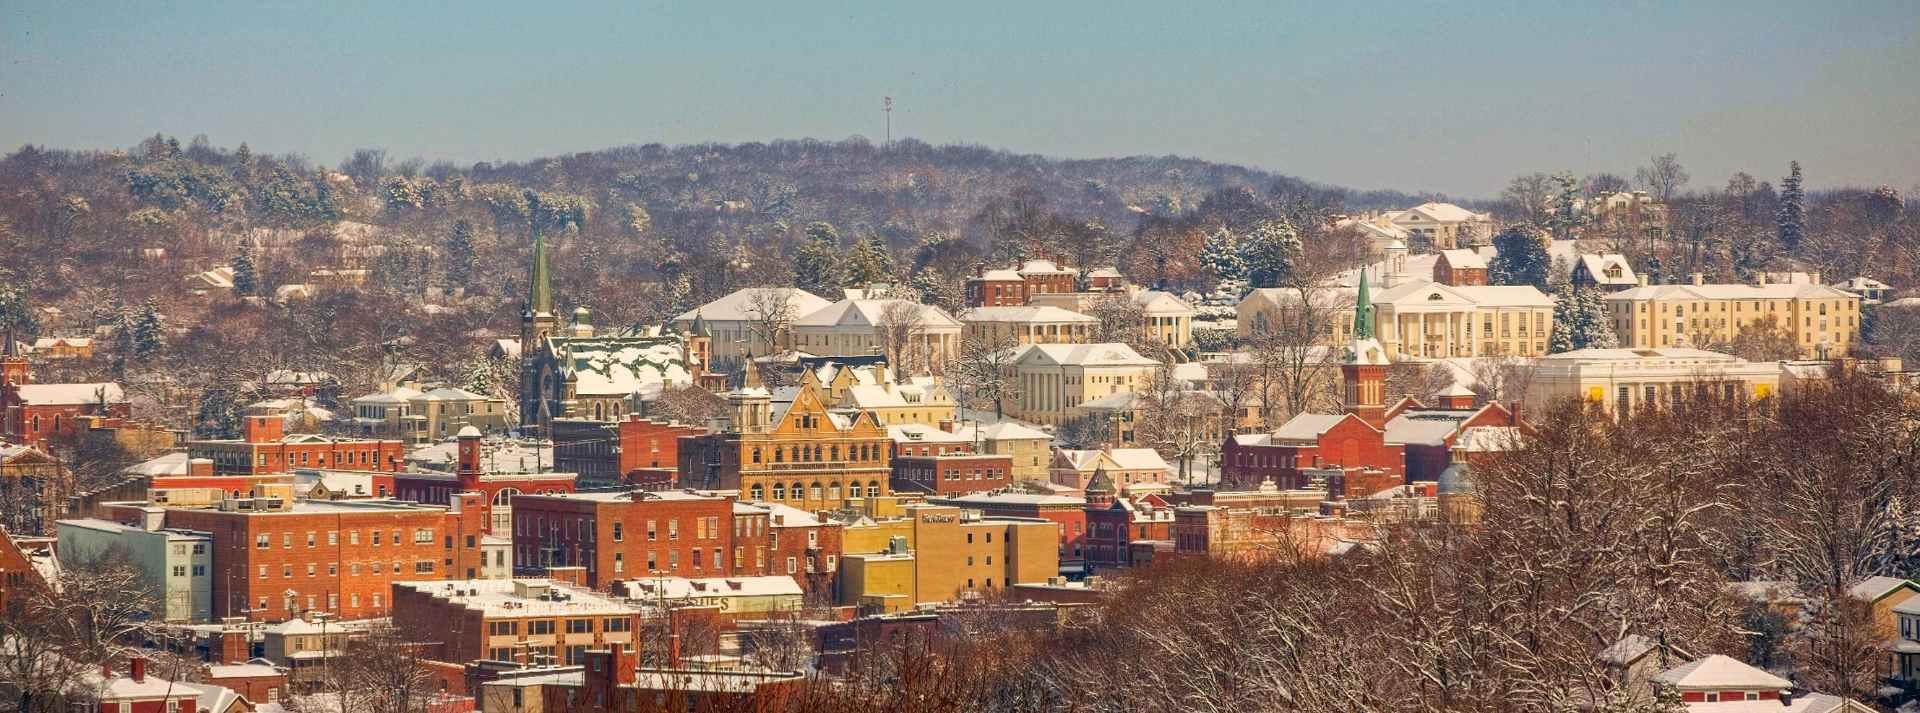 a snowy view of the Staunton skyline